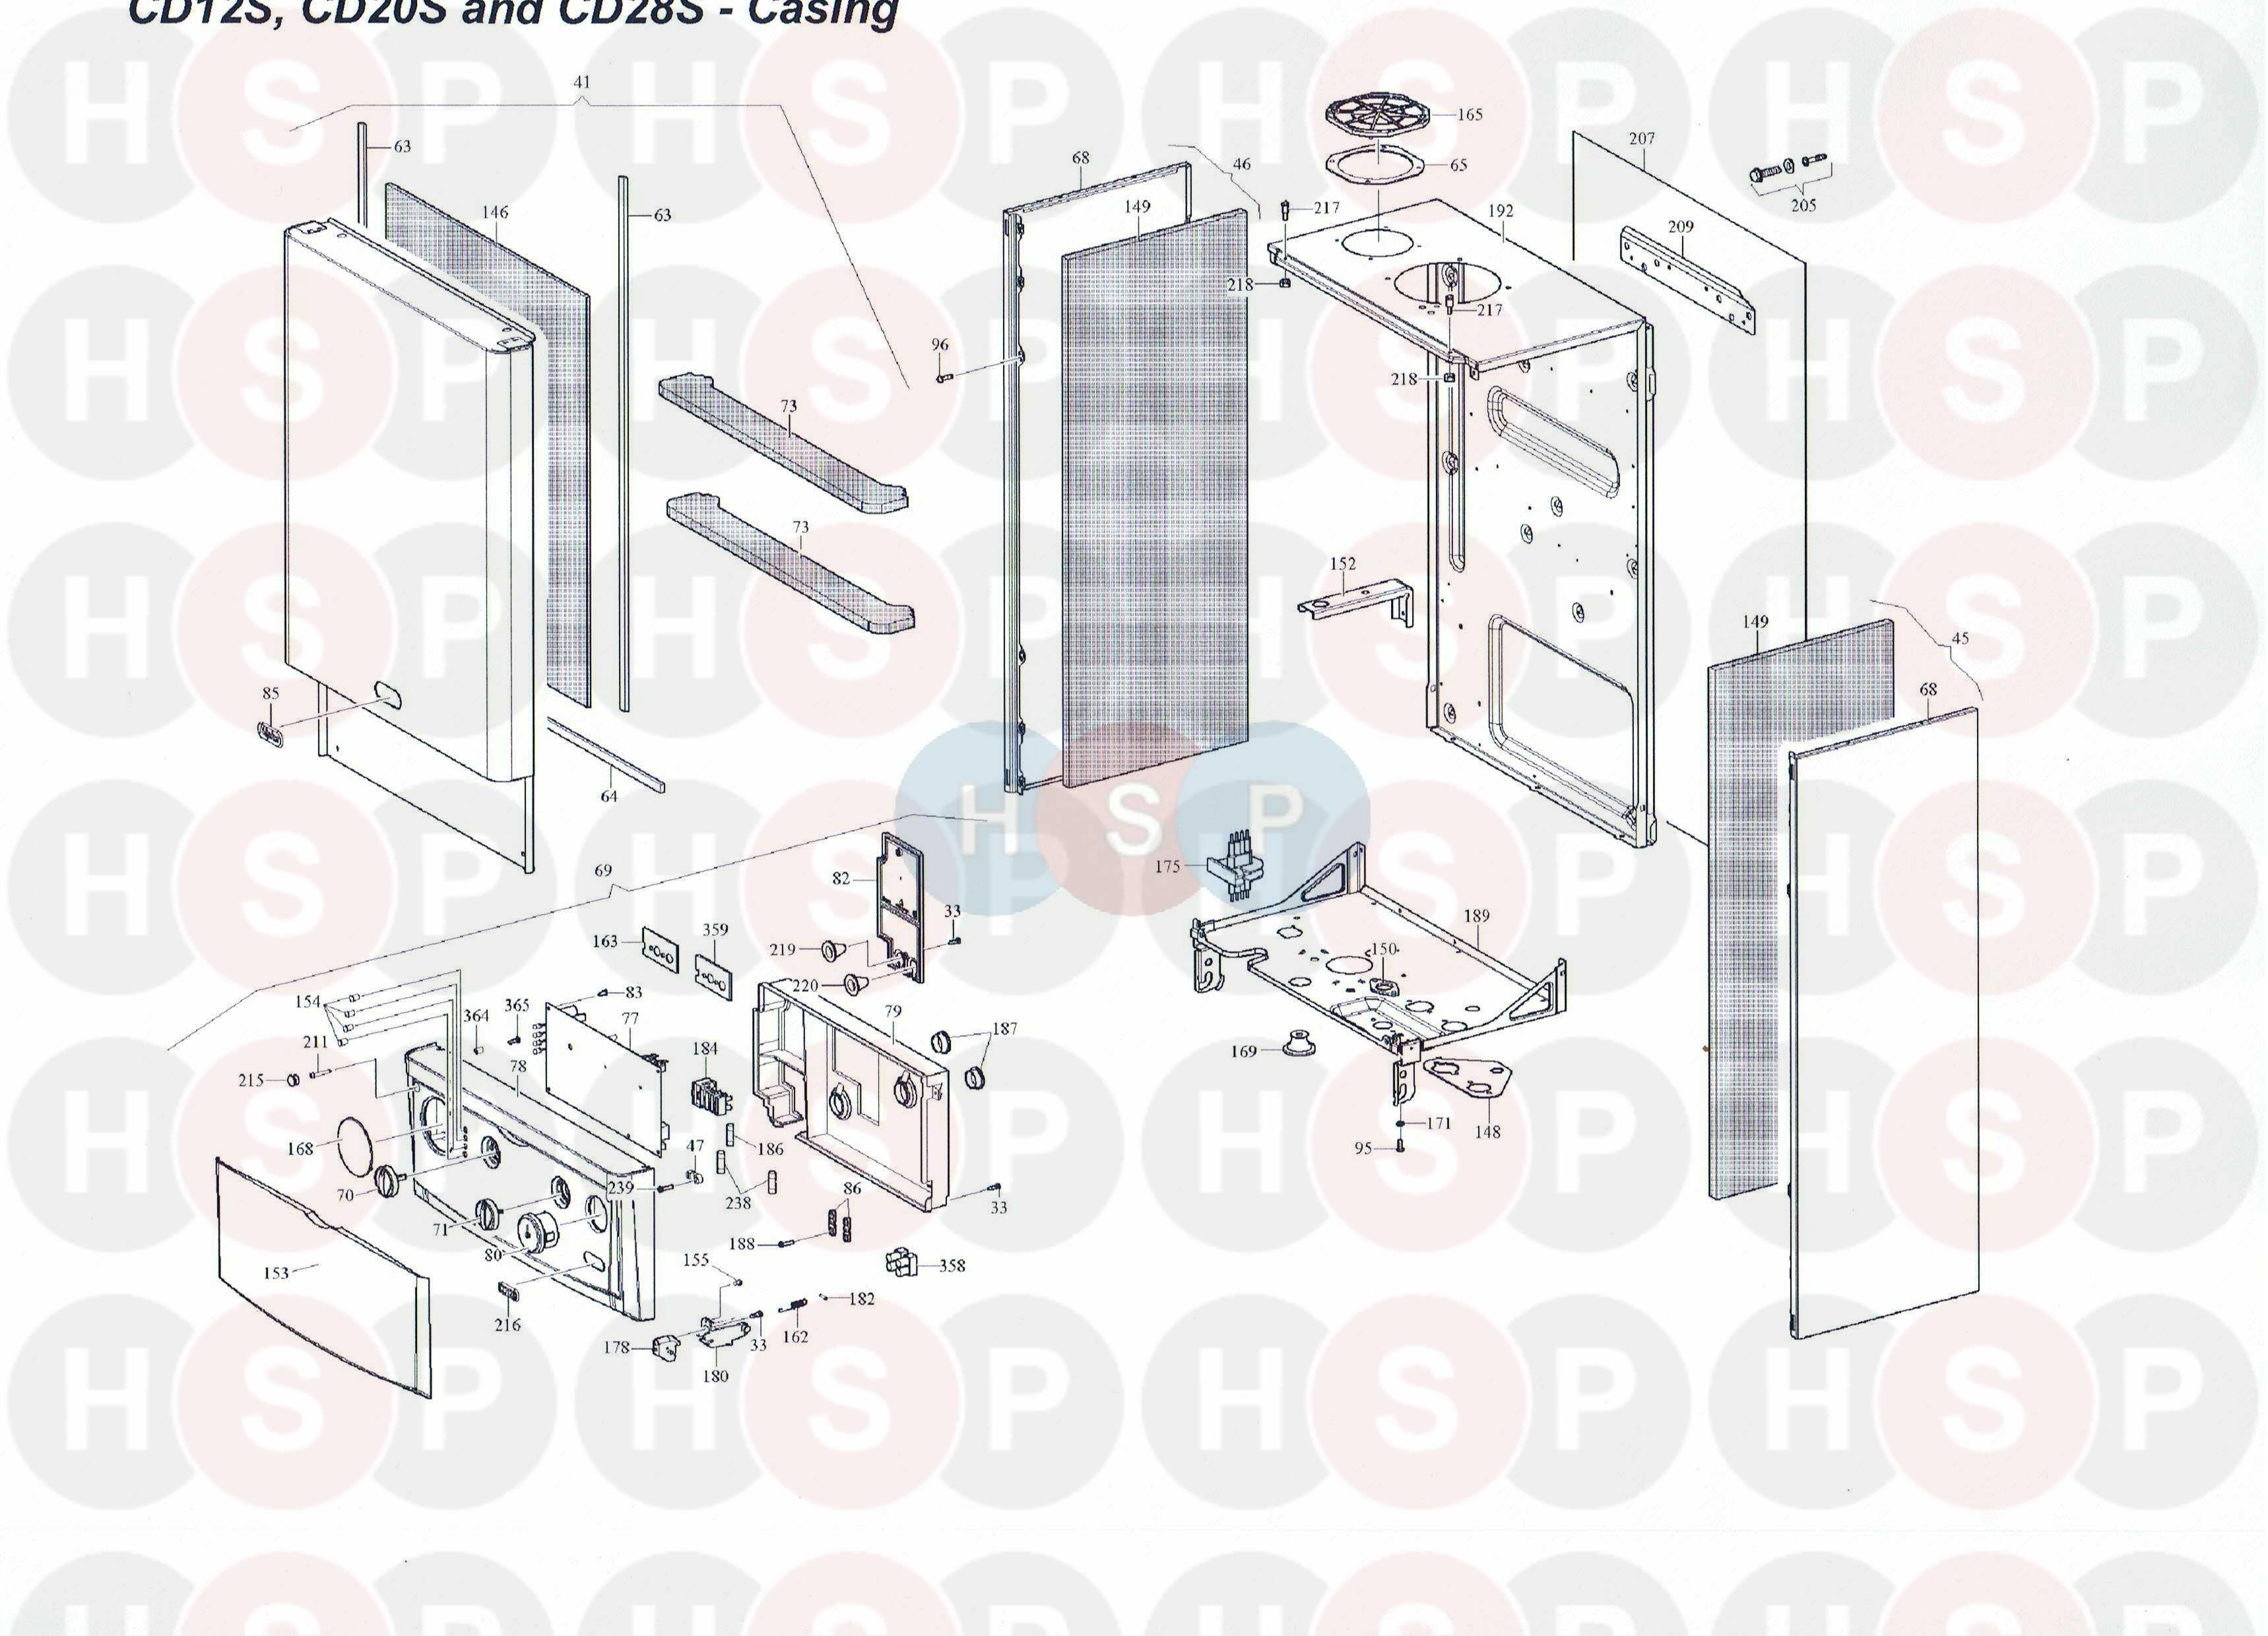 Alpha Cd 12s Casing Diagram Heating Spare Parts Wiring For